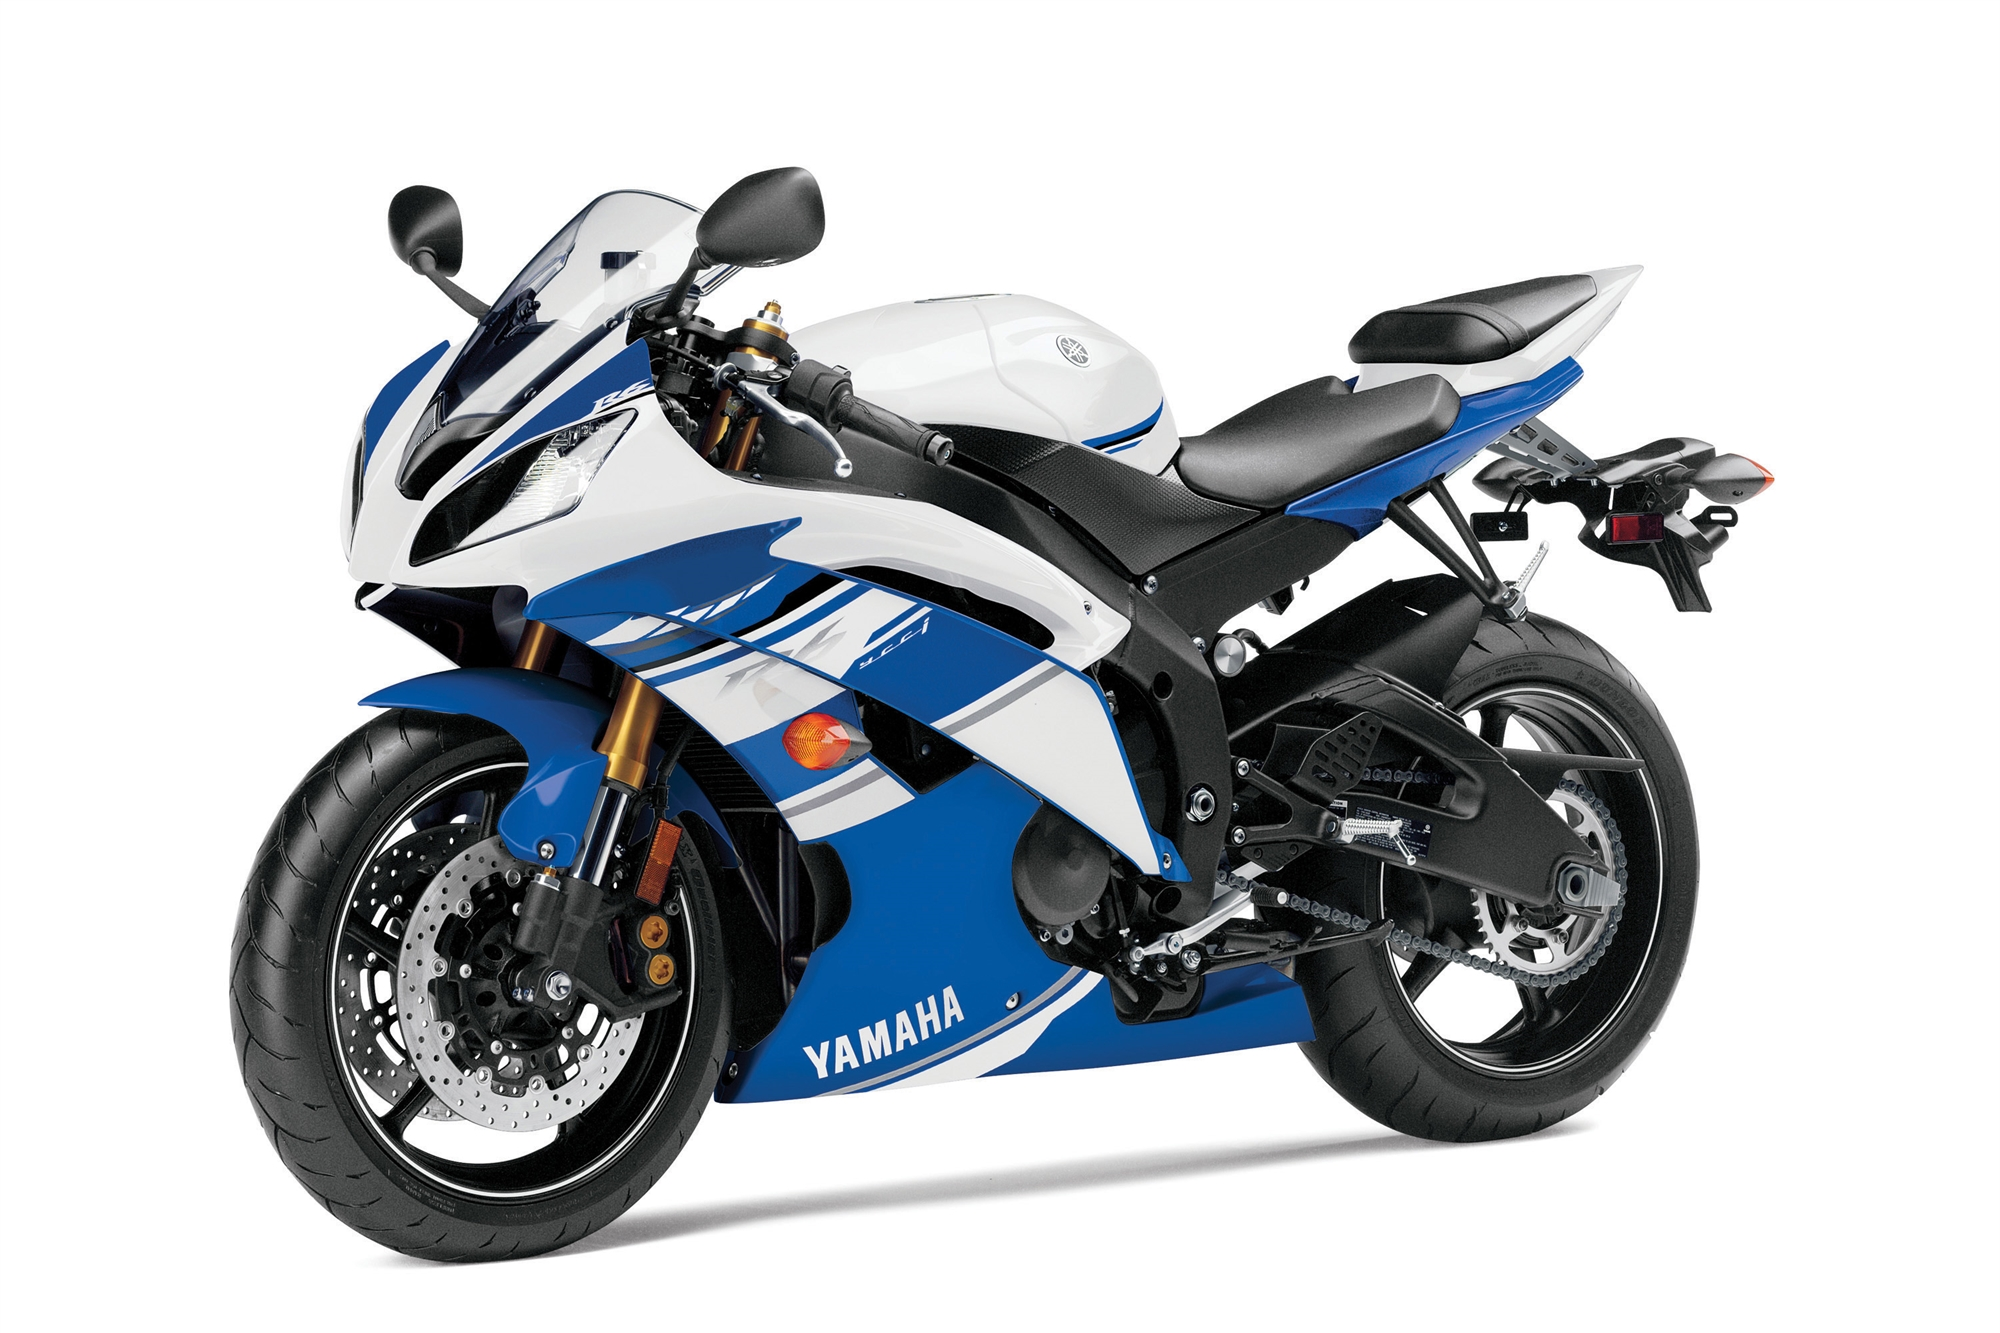 yamaha r6 black 2014 - photo #29